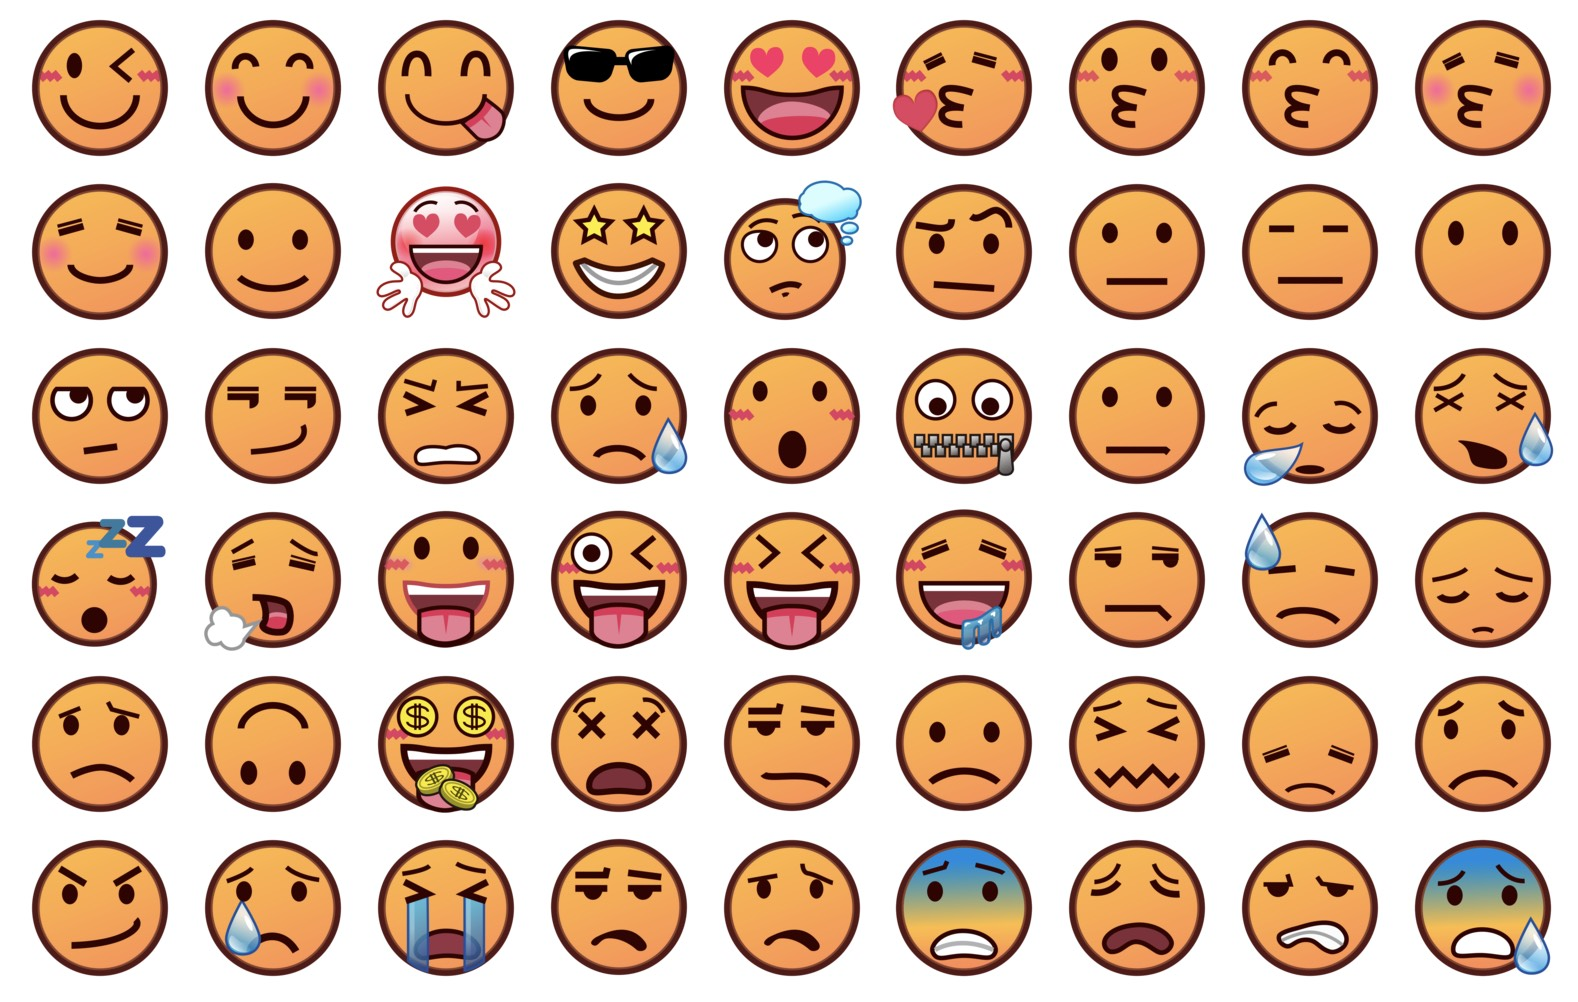 emojidex-set